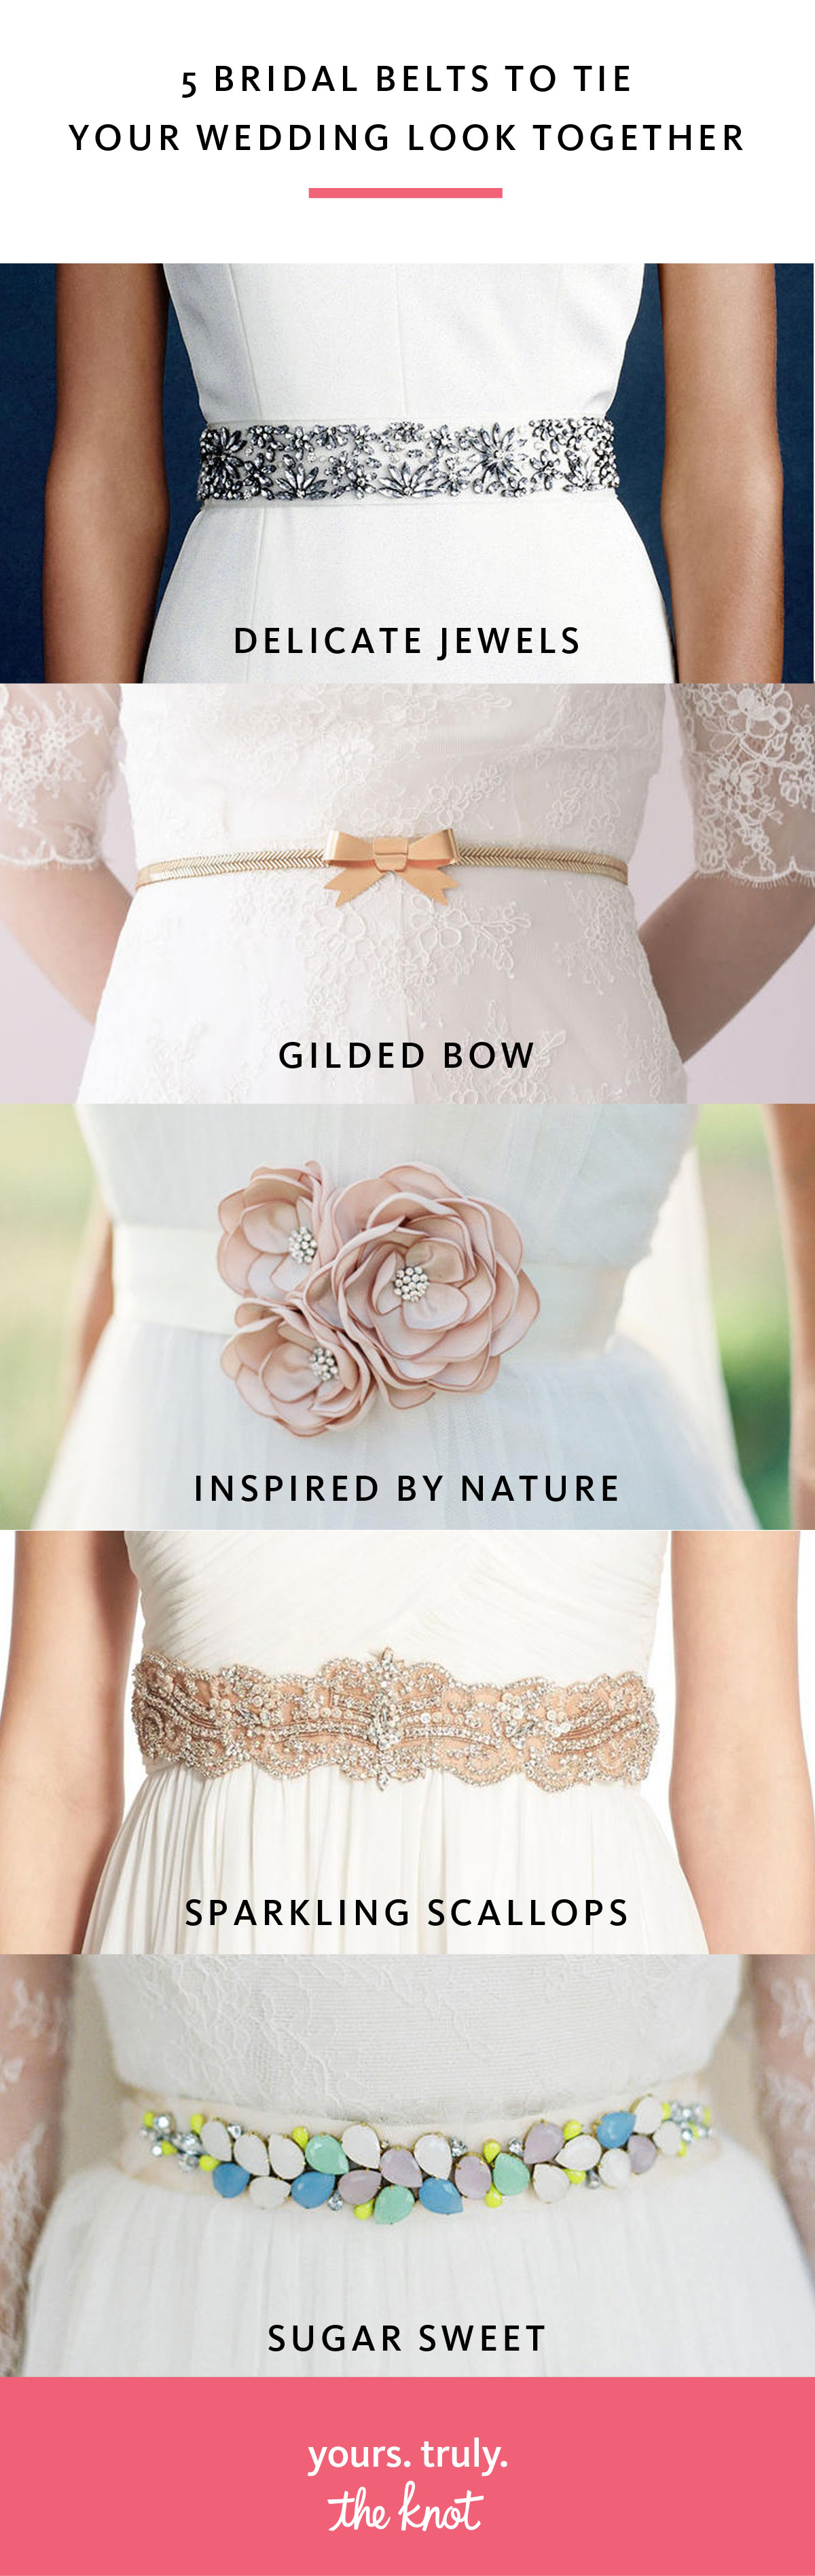 5 Bridal Belts to Tie Your Wedding Look Together | Pinterest